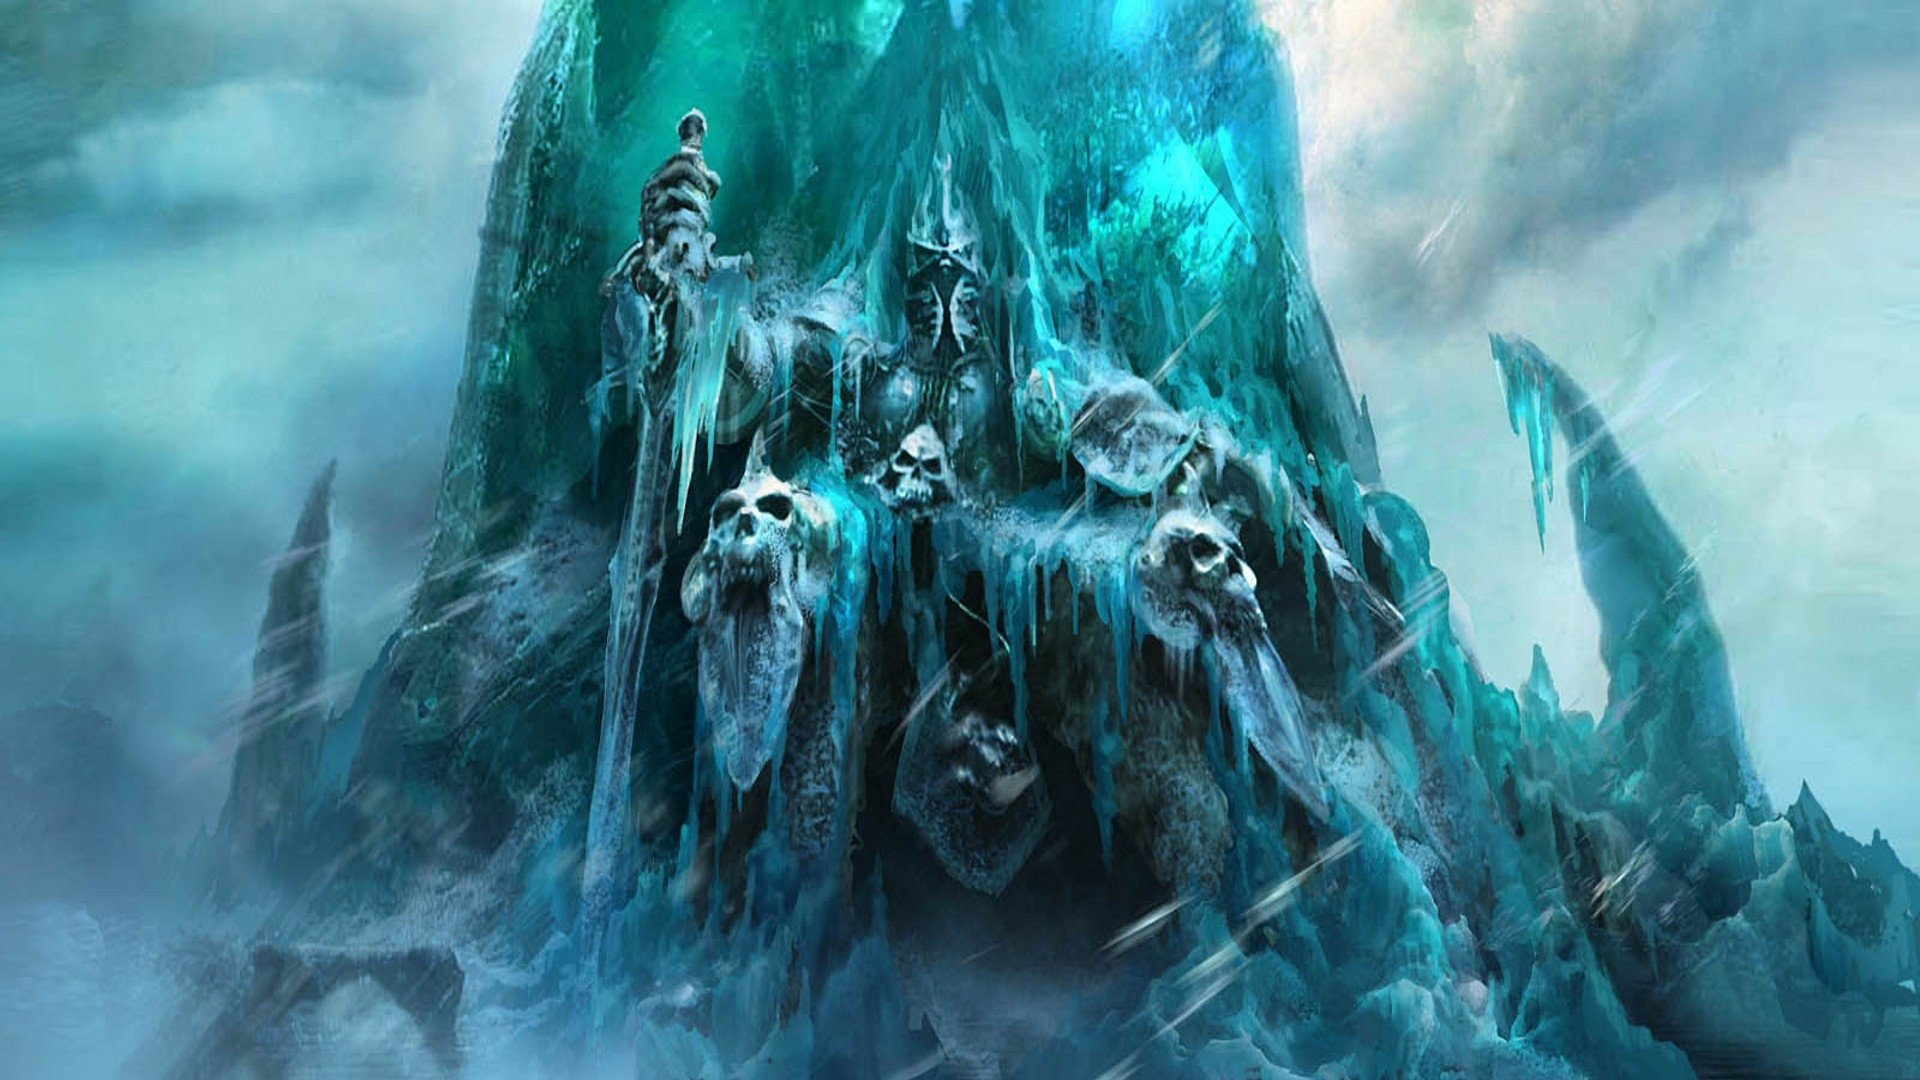 world of warcraft: rise of the lich king hd wallpaper | hintergrund